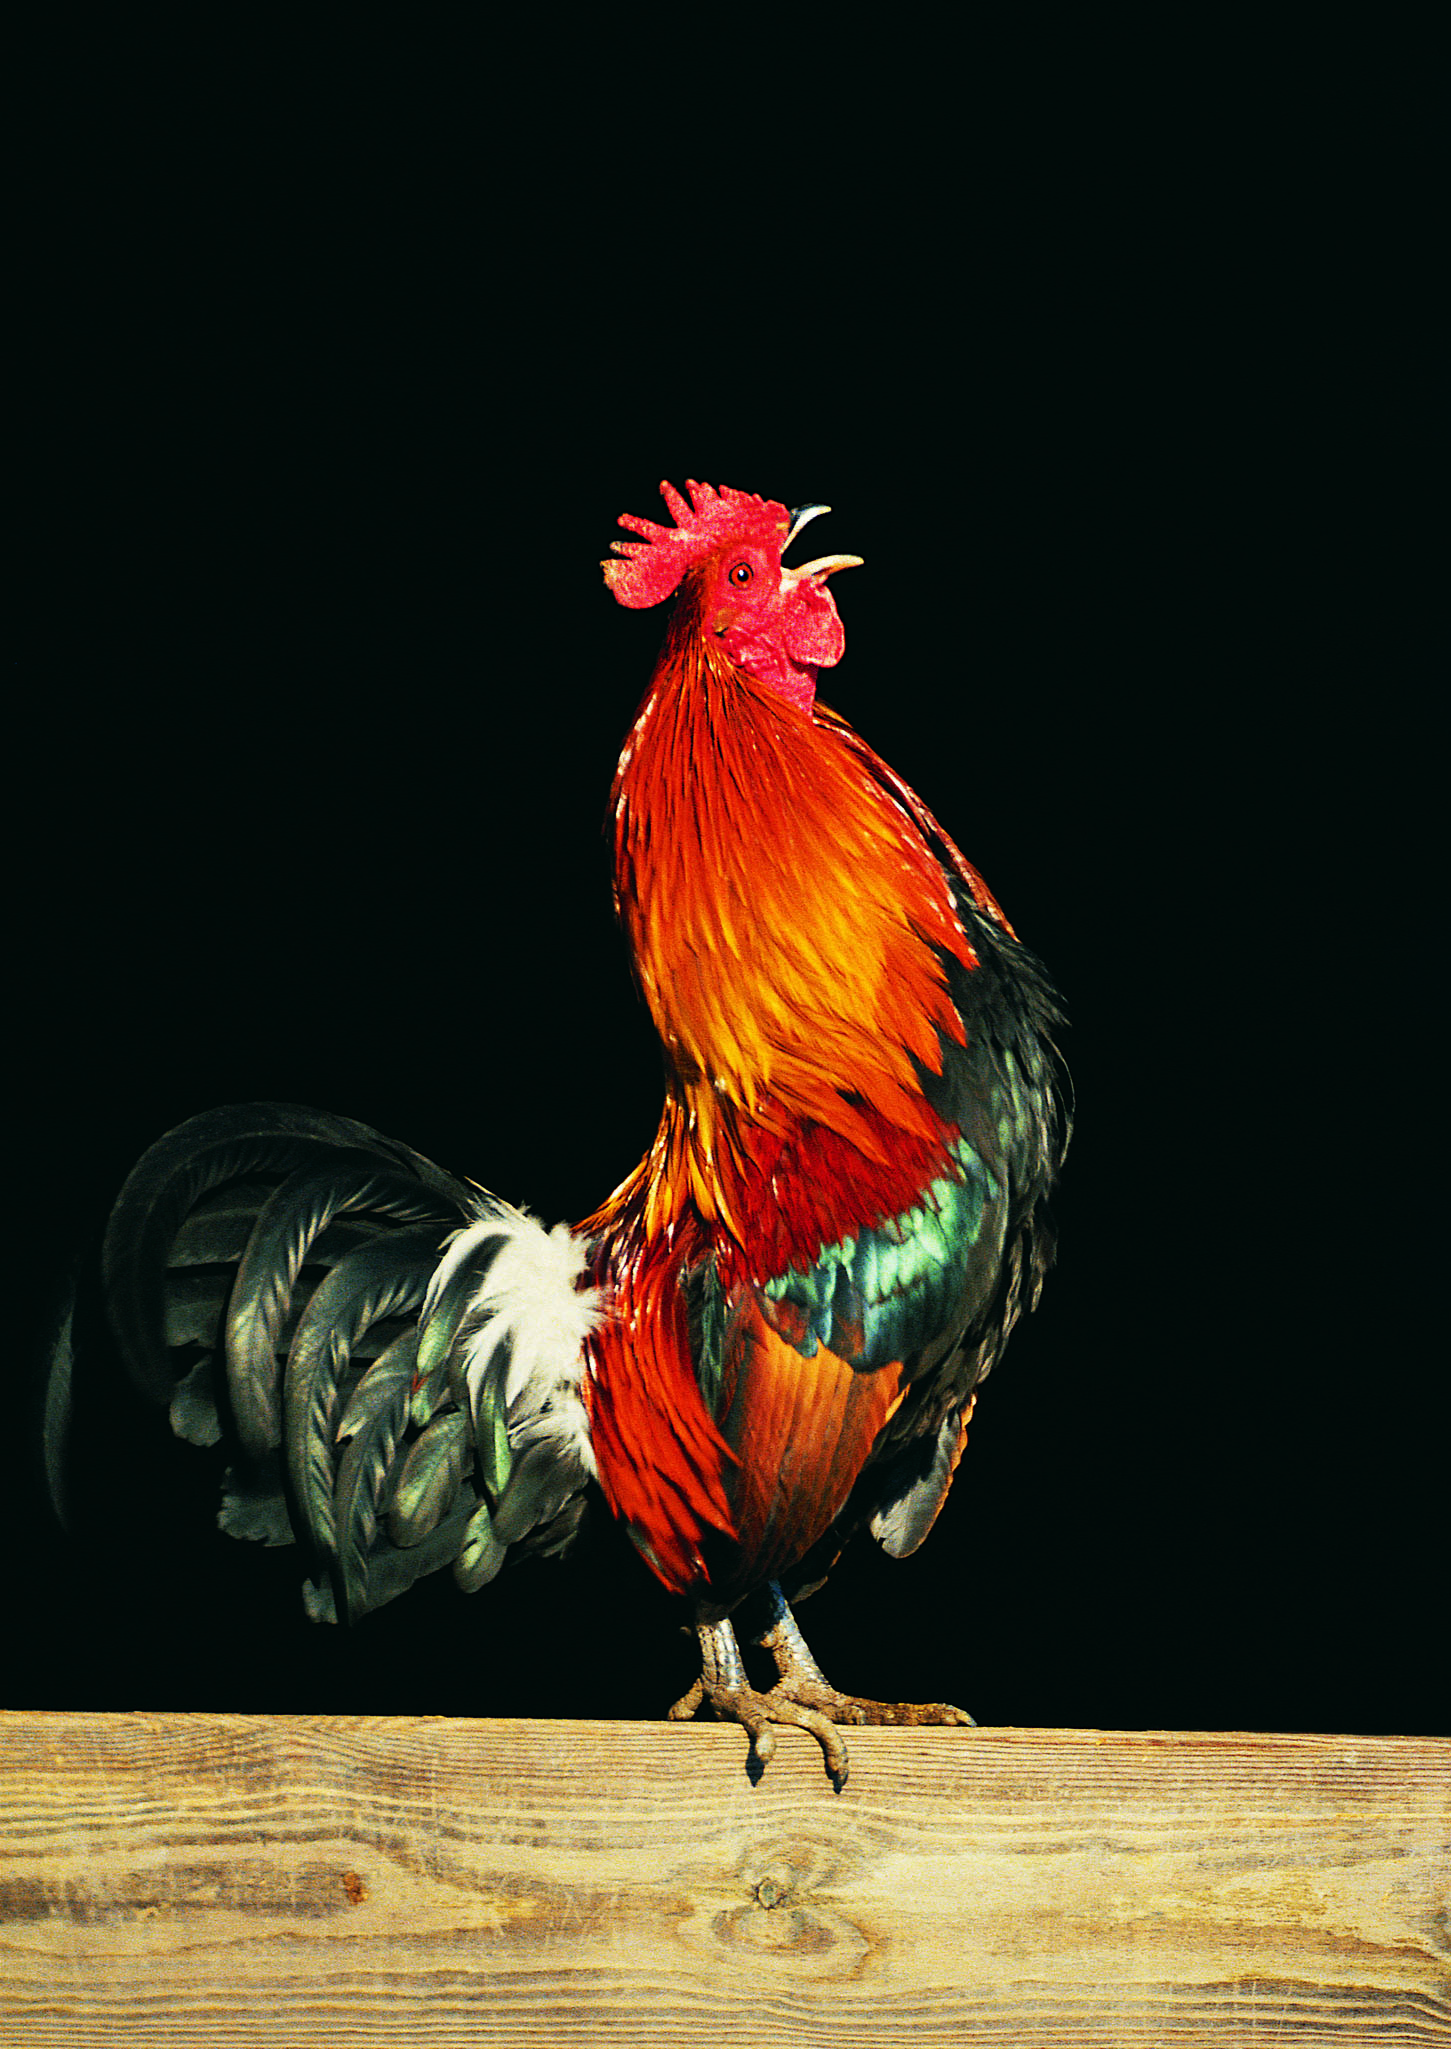 Changes in the Color of a Rooster's Comb | Animals - mom.me